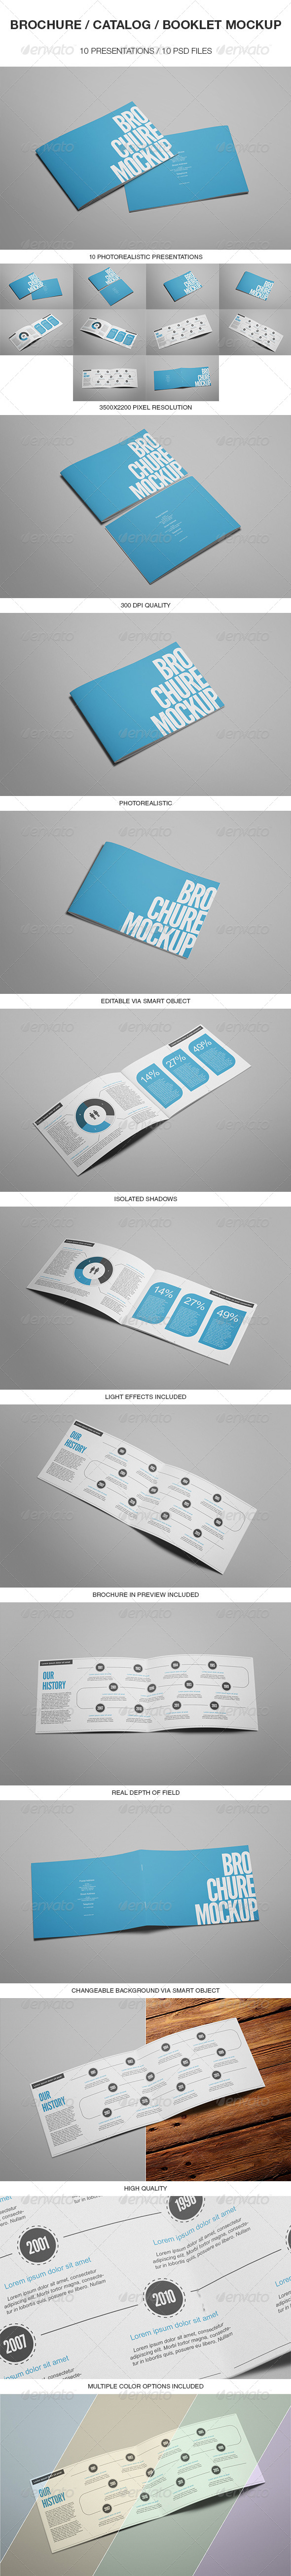 Brochure Catalog Booklet Mockup